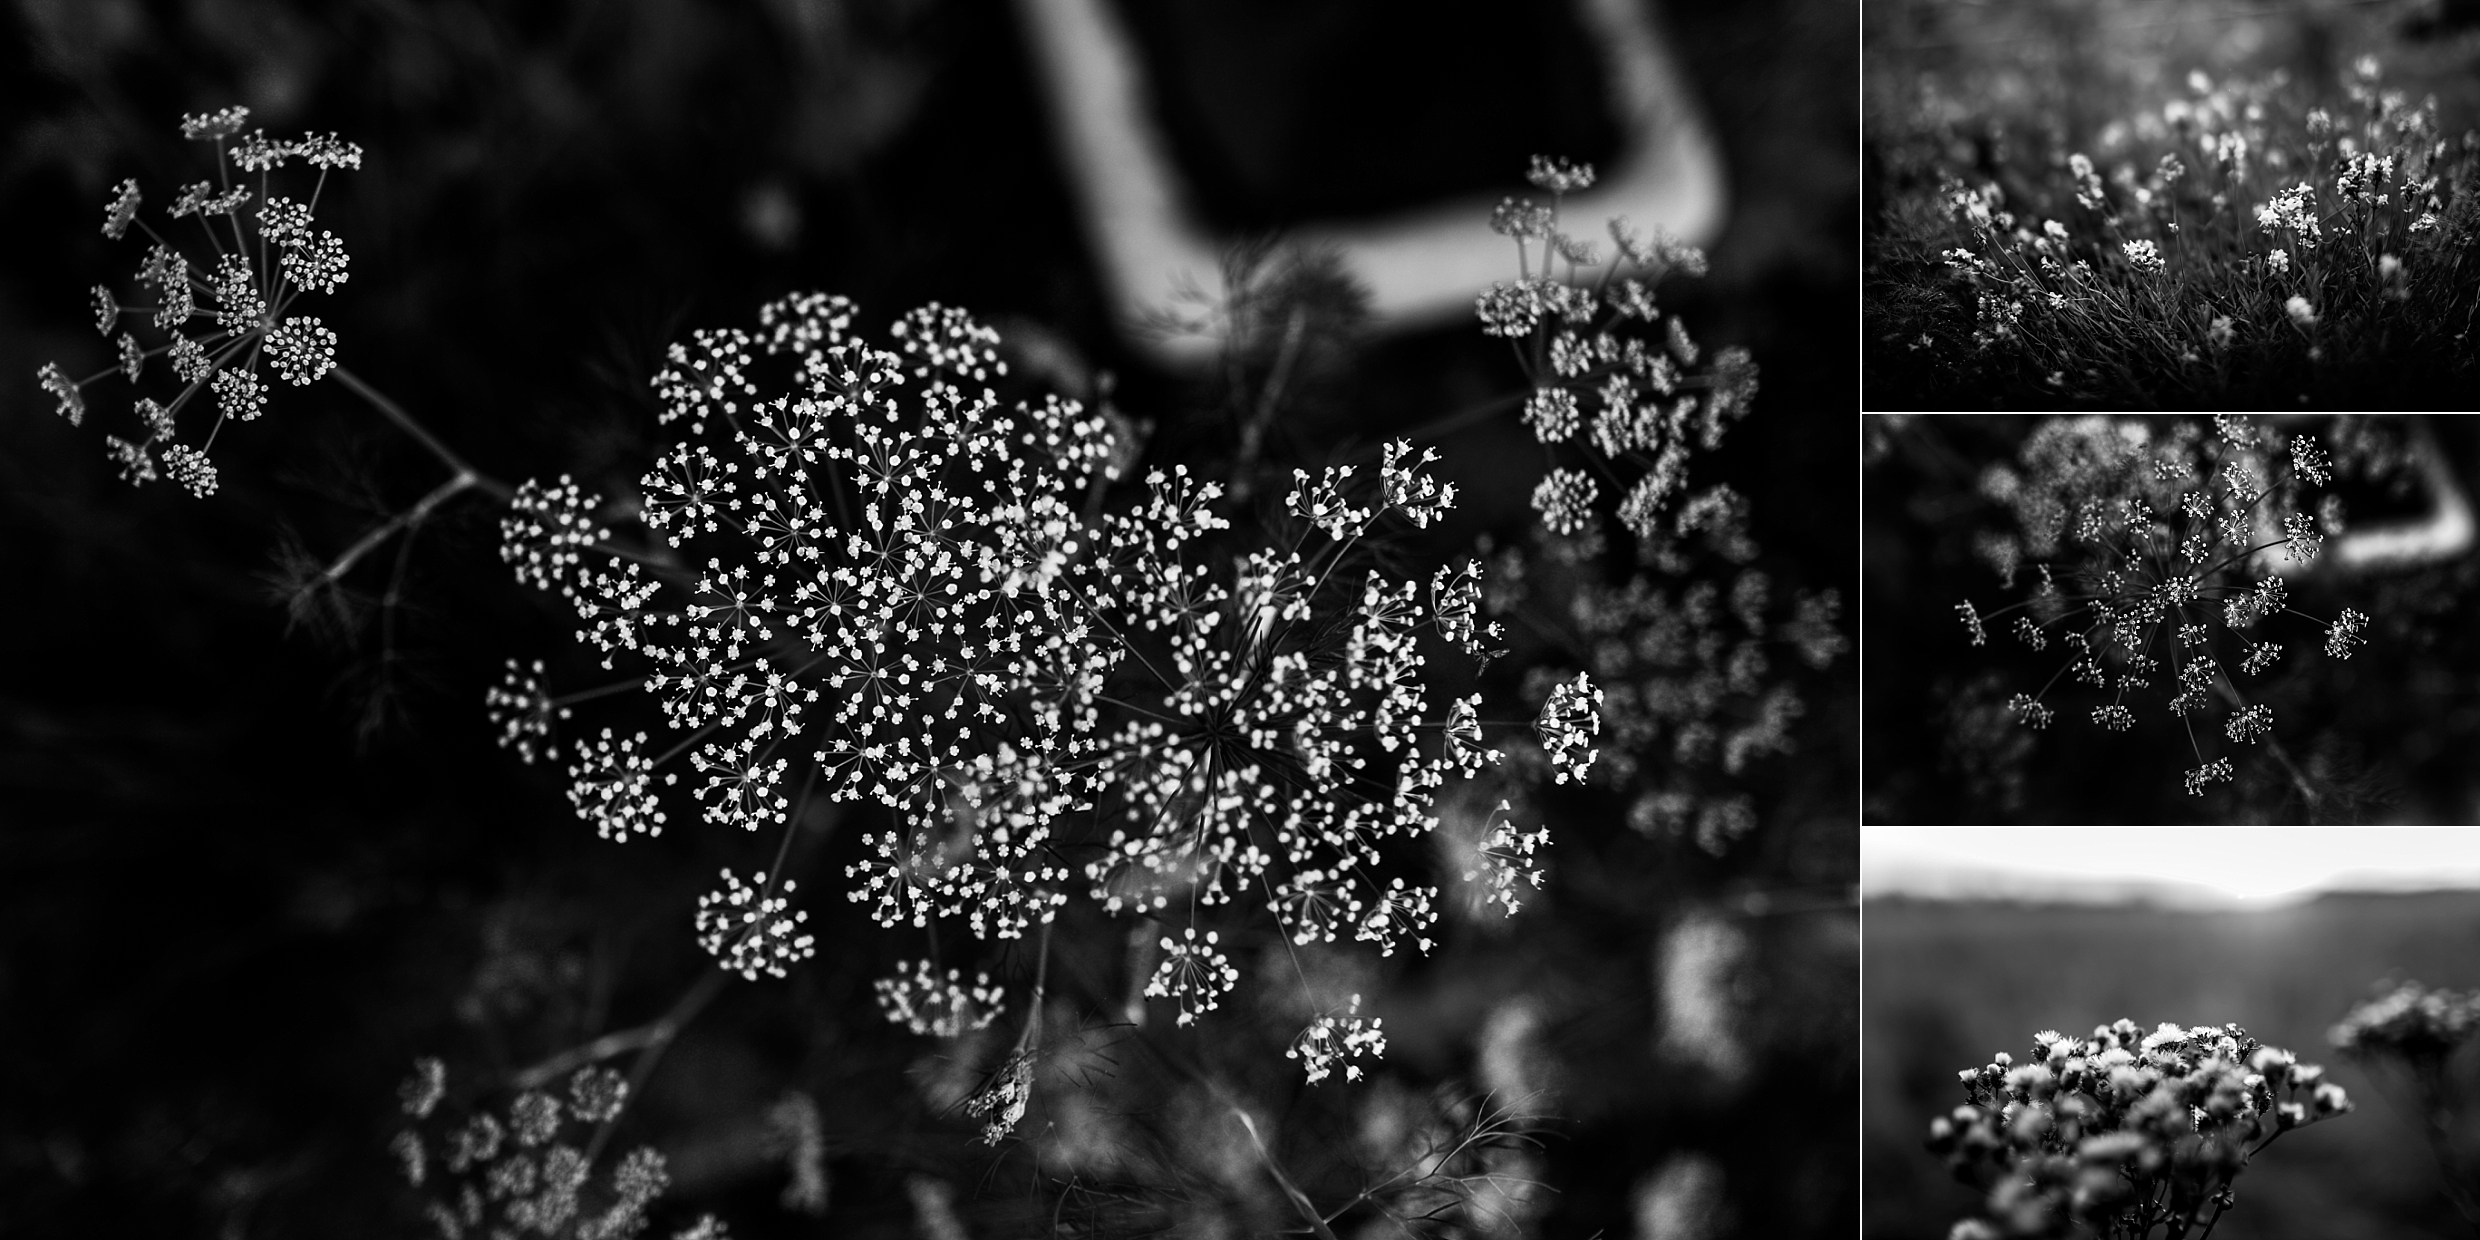 Black and white flowers in a garden in Olathe Kansas